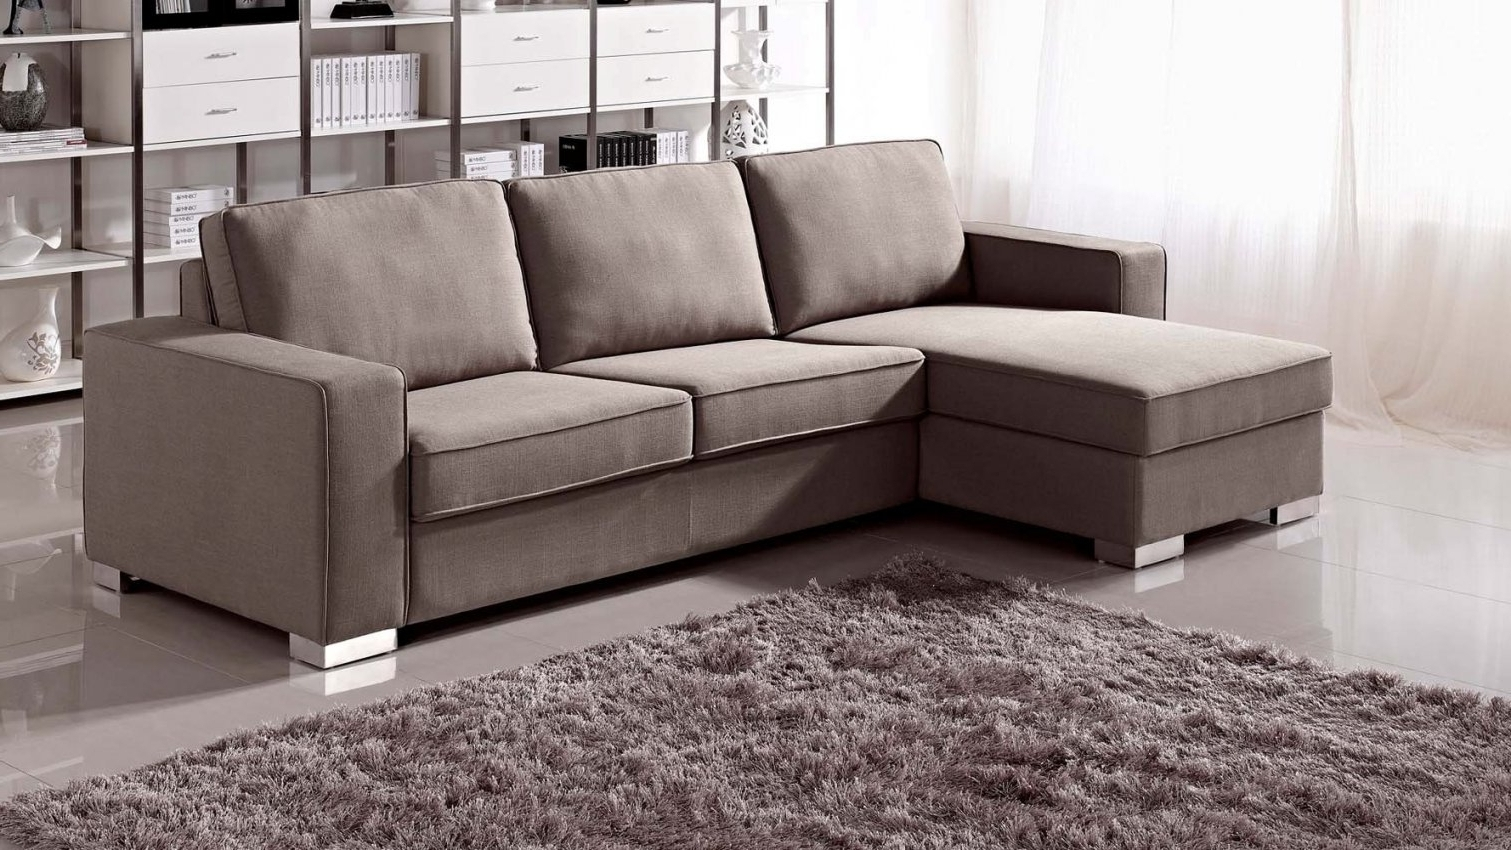 Well Known Sectional Sleeper Sofas With Chaise Pertaining To Sectional Sleeper Sofa With Chaise 29 In Sofa Design Ideas (View 14 of 15)